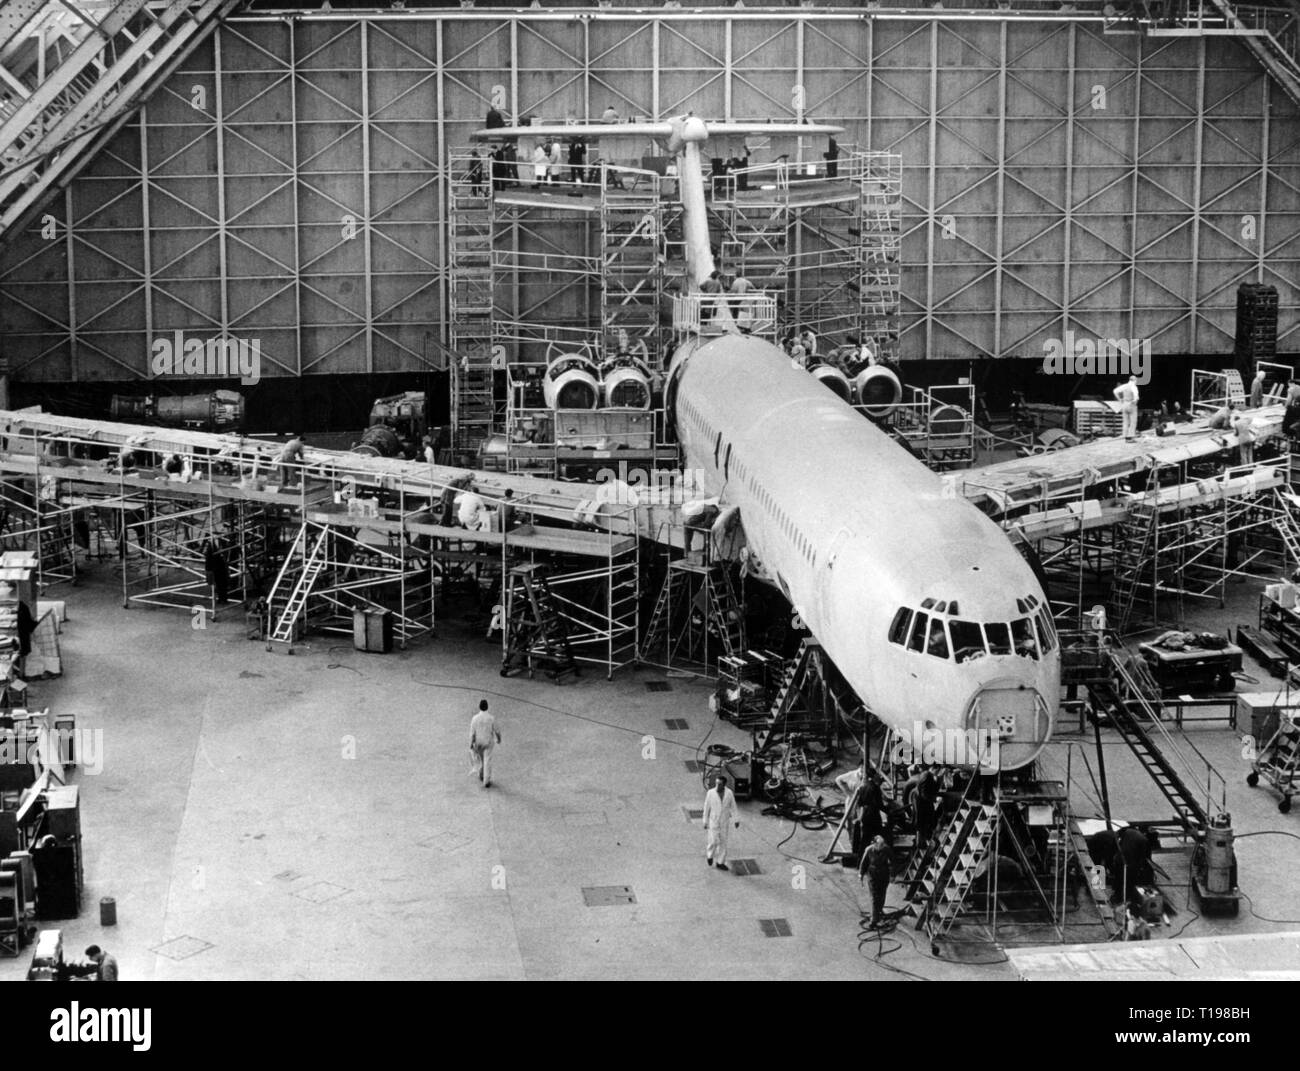 industry, aviation industry, Vickers-Armstrongs Limited, final assembly of a Vickers VC10, factory in Weybridge, Surrey, England, 9.2.1962, Additional-Rights-Clearance-Info-Not-Available - Stock Image